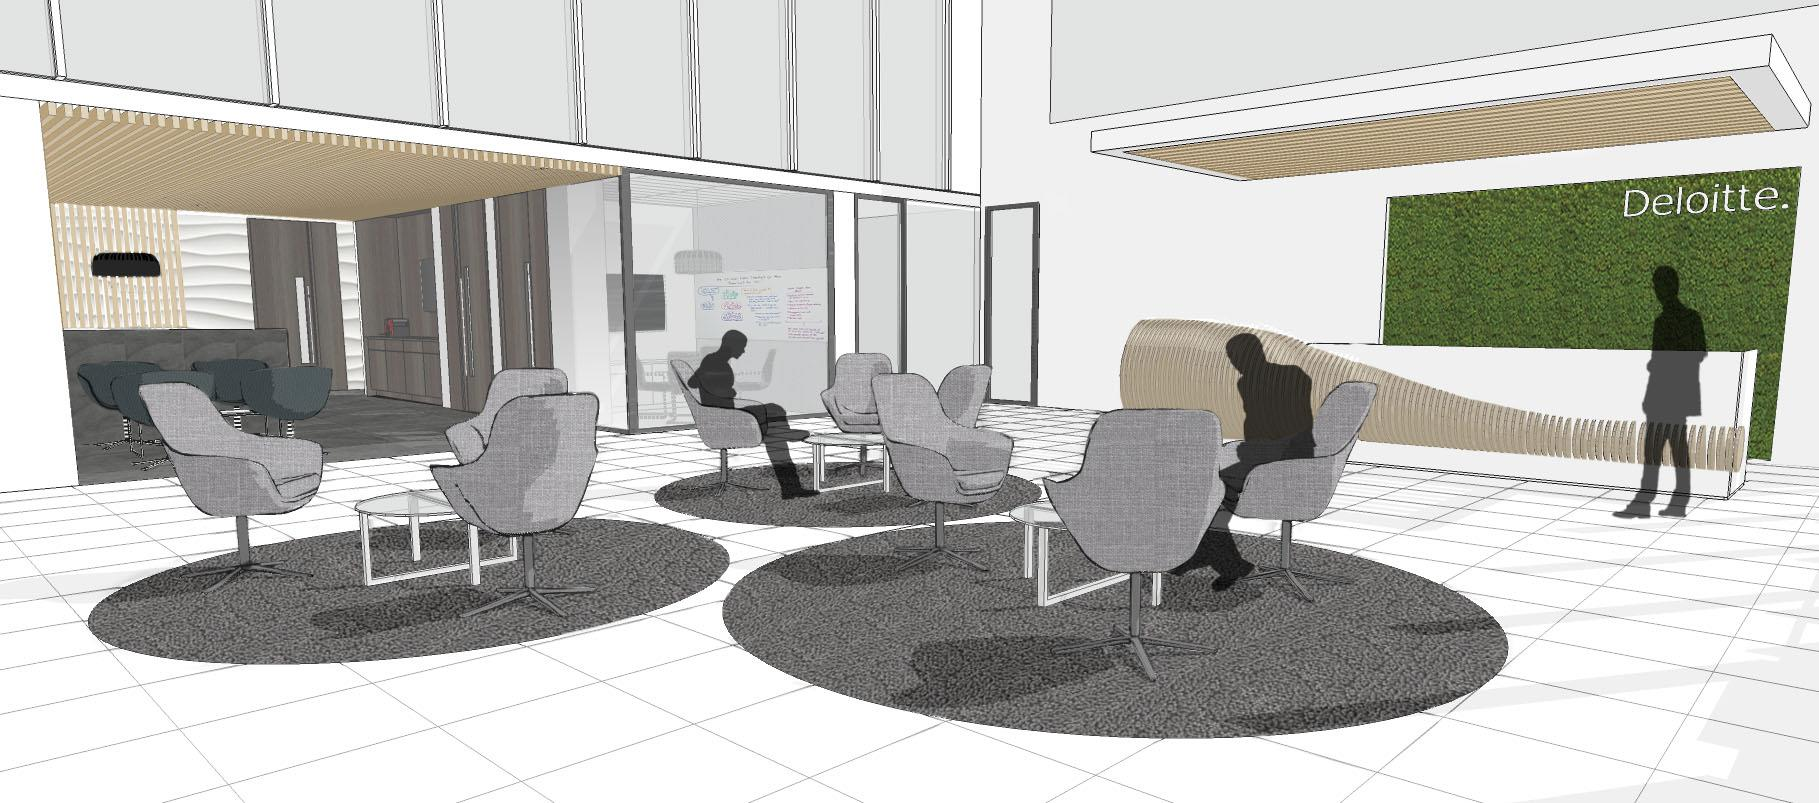 Deloitte s birmingham hq transformation underway overbury - Bnp paribas birmingham office ...